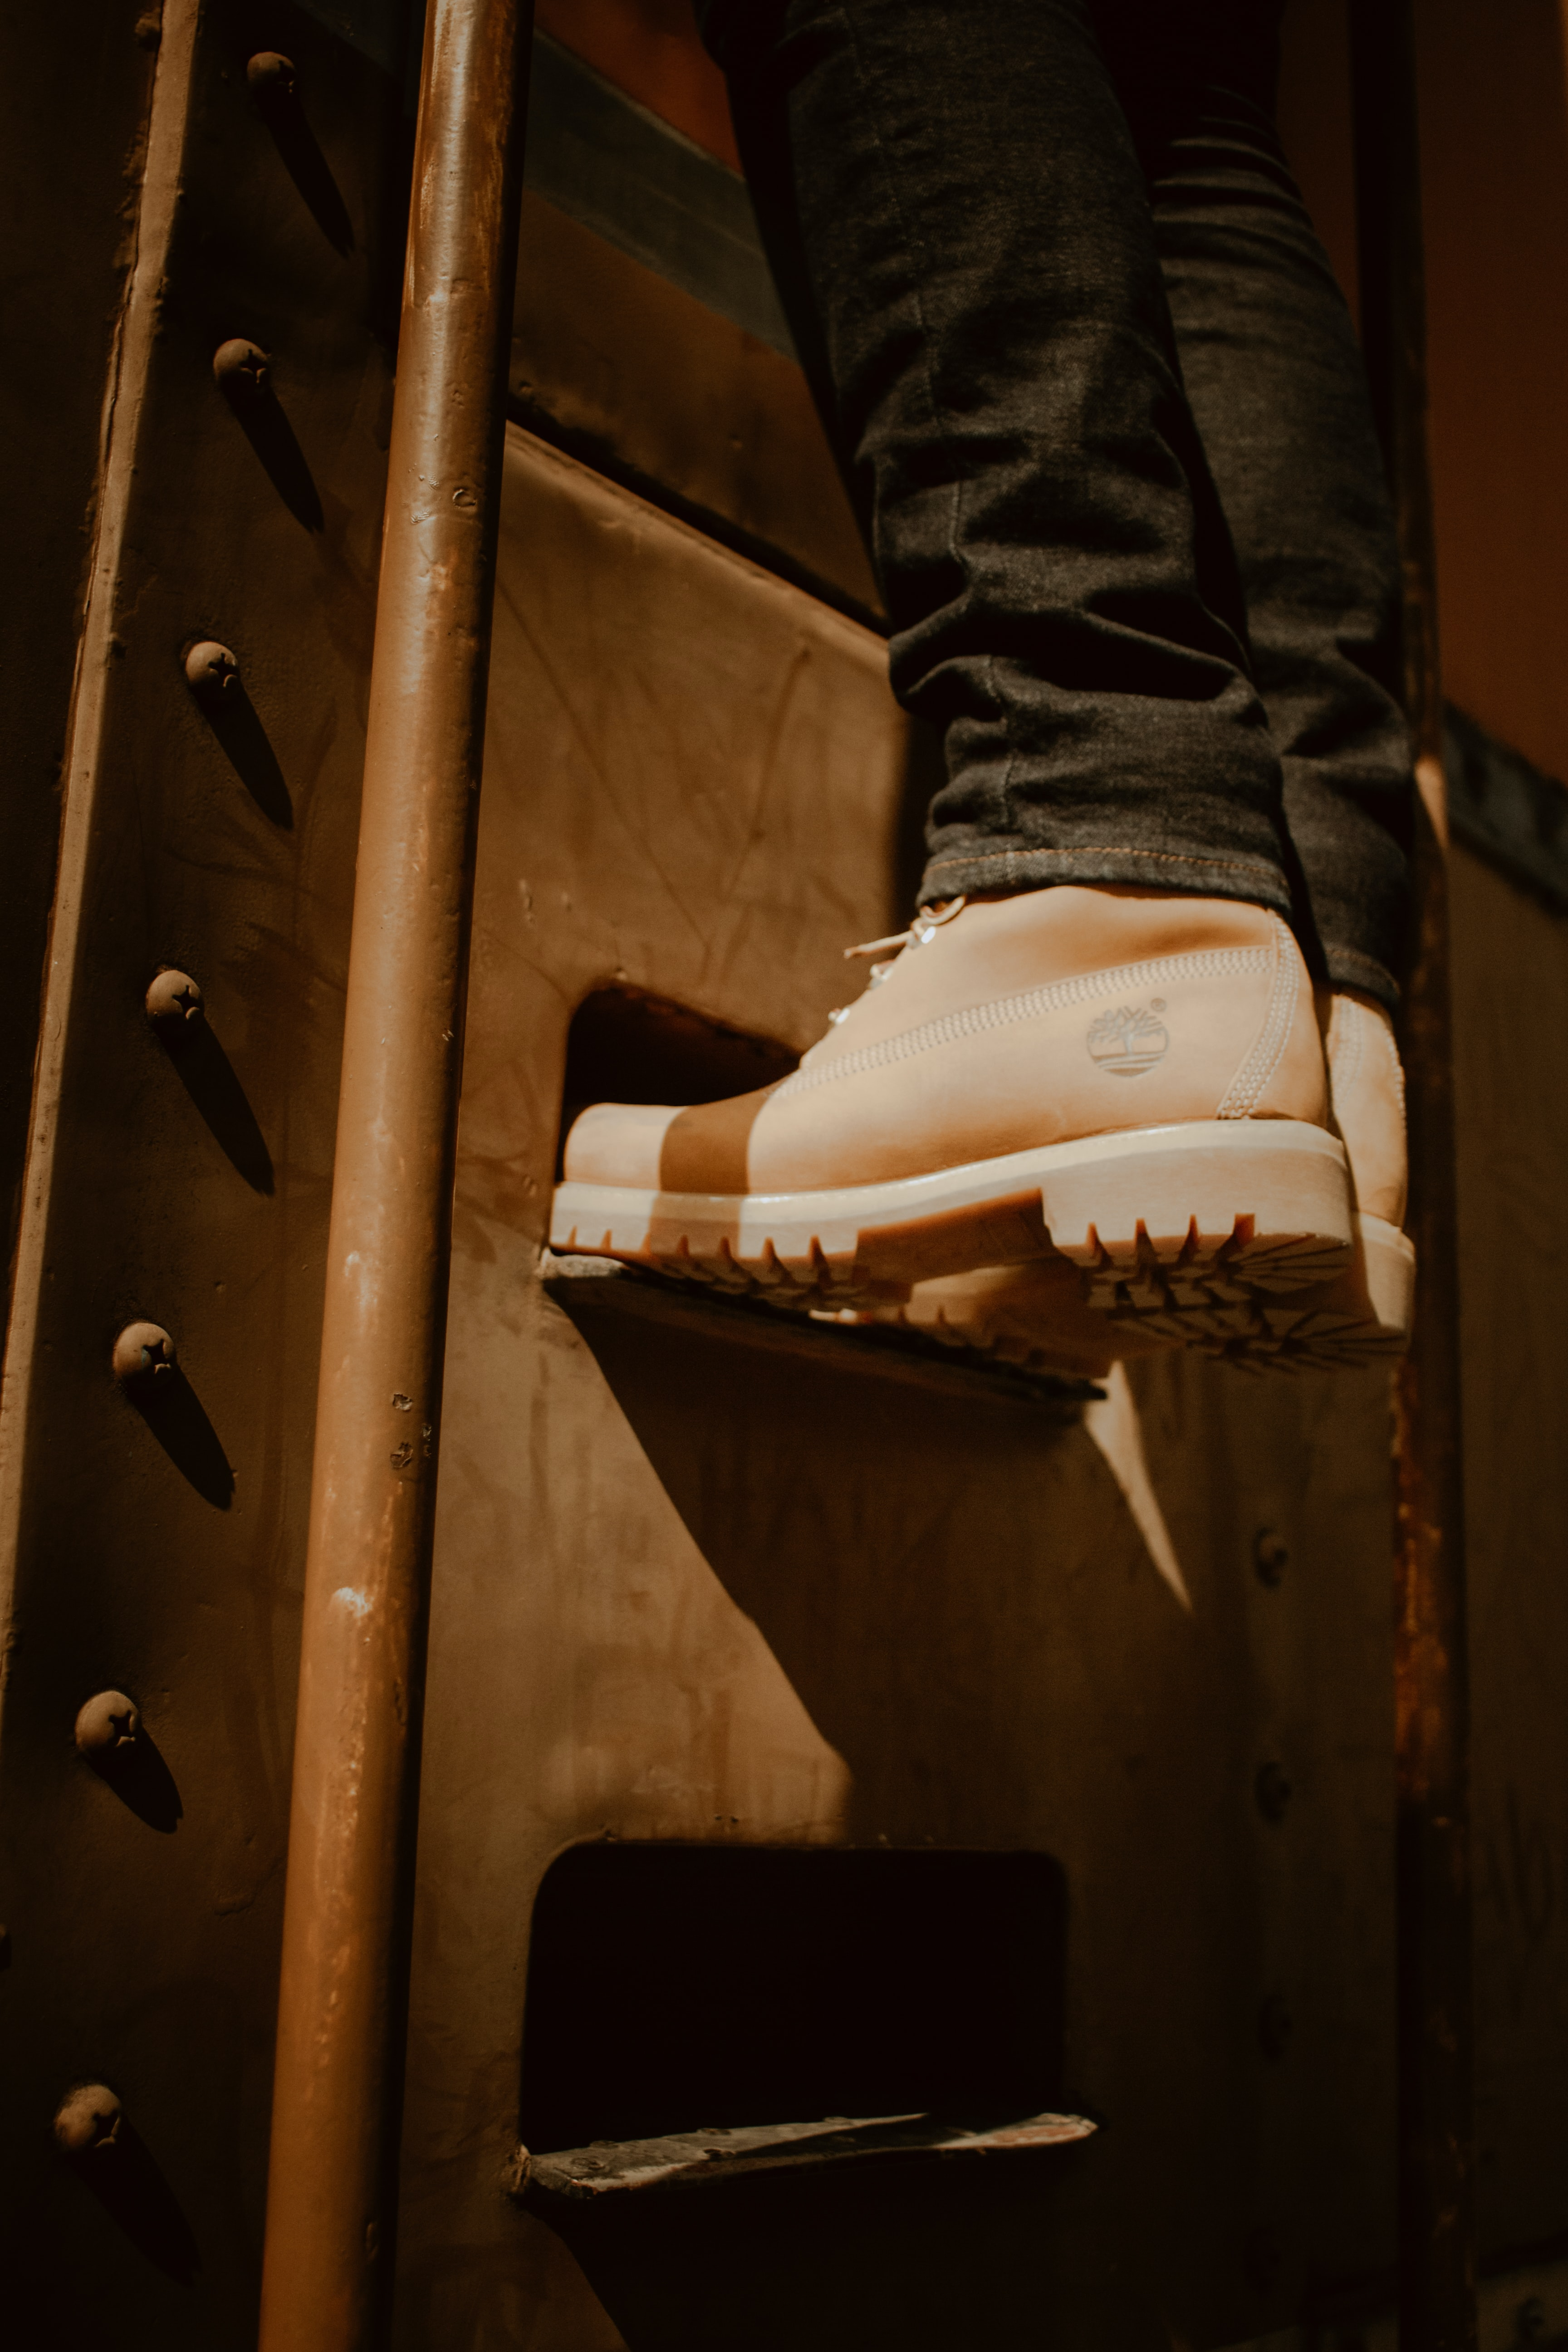 person wearing brown Timberland work boots climbing on stair